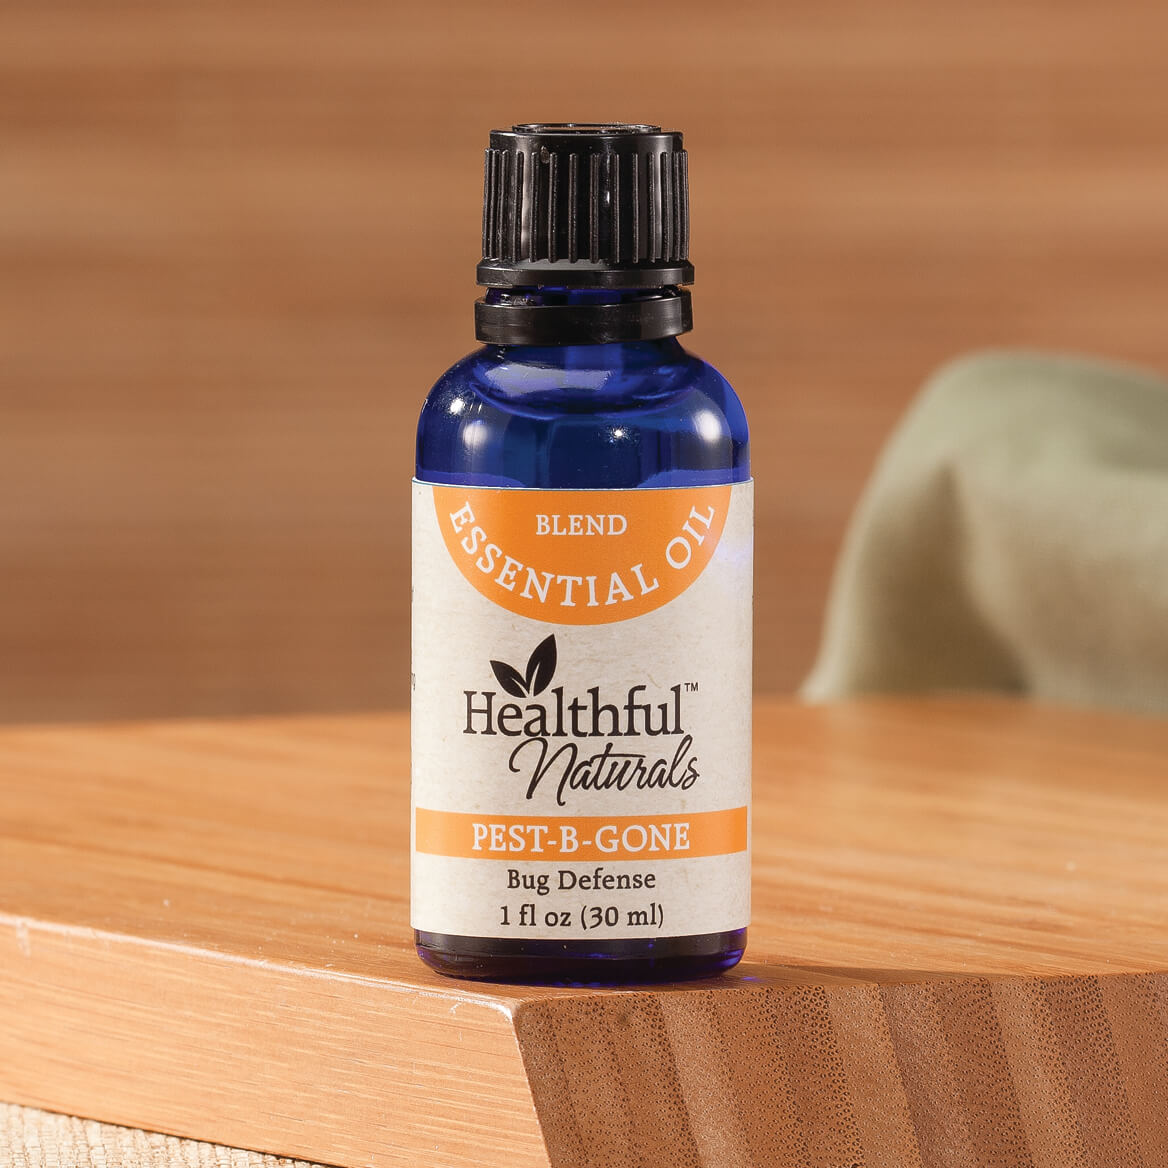 Healthful Naturals Pest-B-Gone Essential Oil, 30 ml - Walter Drake